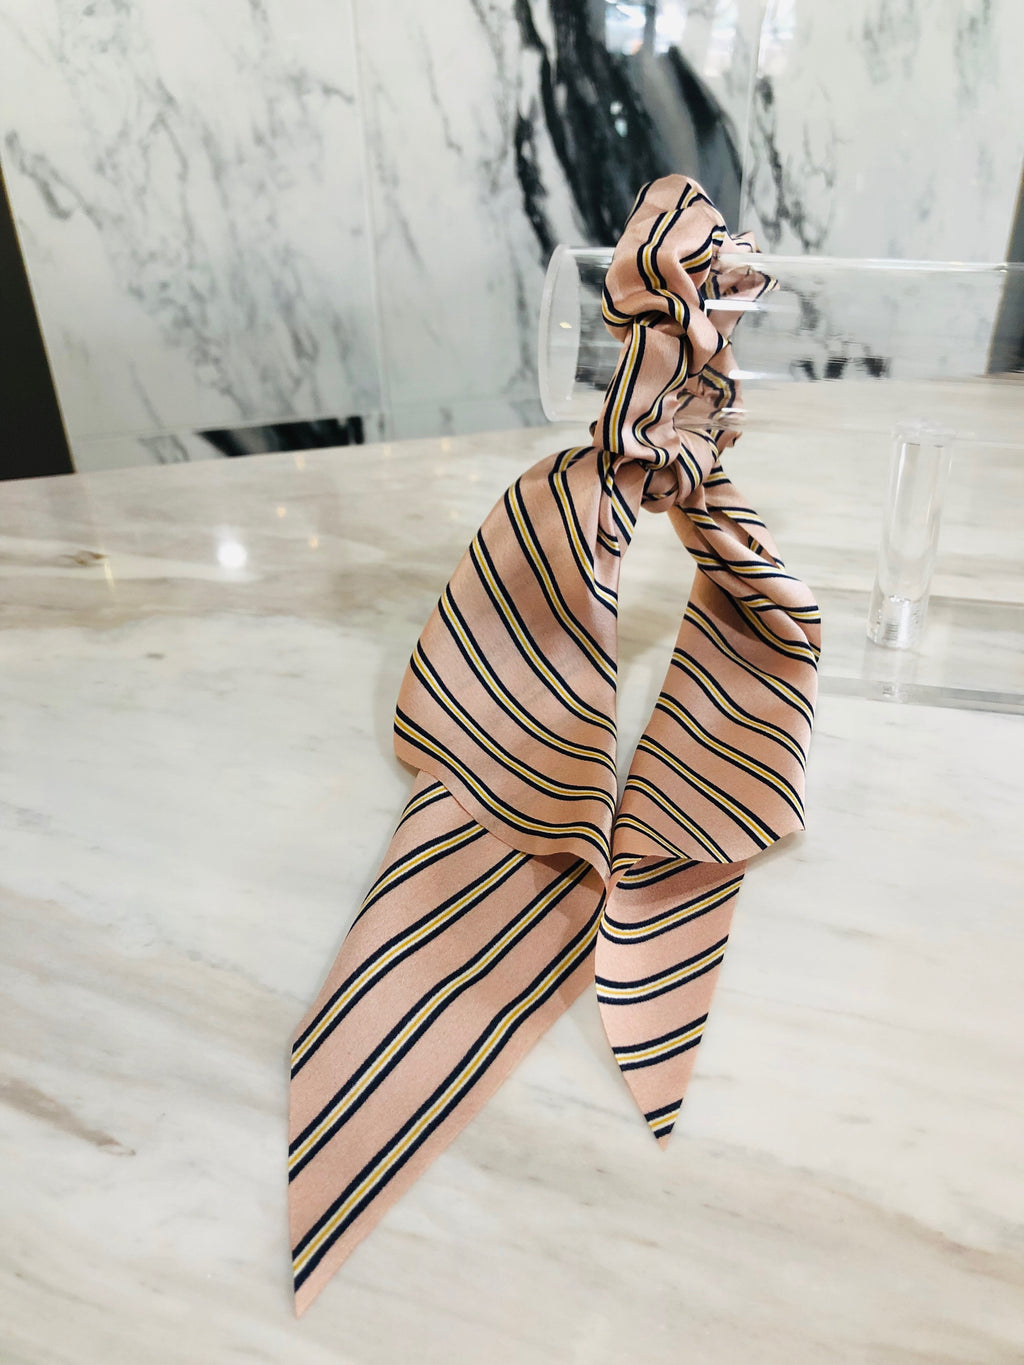 UNIKONCEPT Lifestyle boutique: Hair ribbons with elastic band to secure. This silk-like hair ribbon is baby pink with small navy blue and white striped pattern all over.